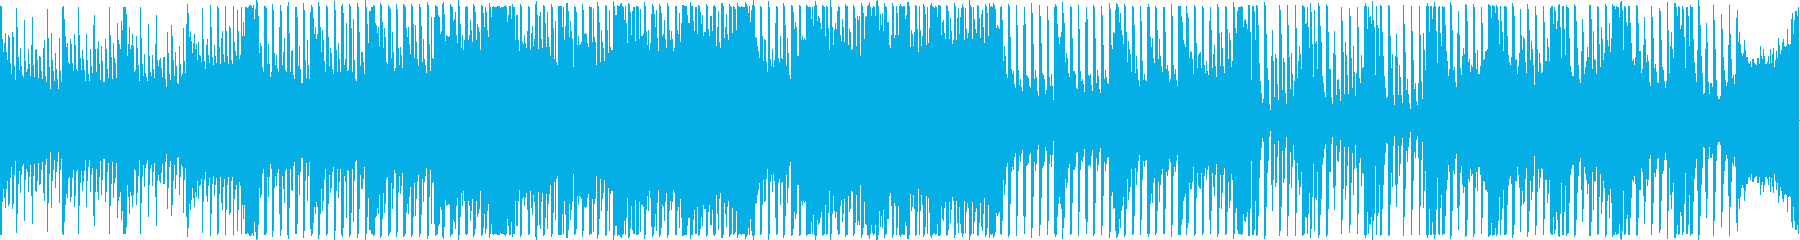 Happy song with good tempo's reproduced waveform